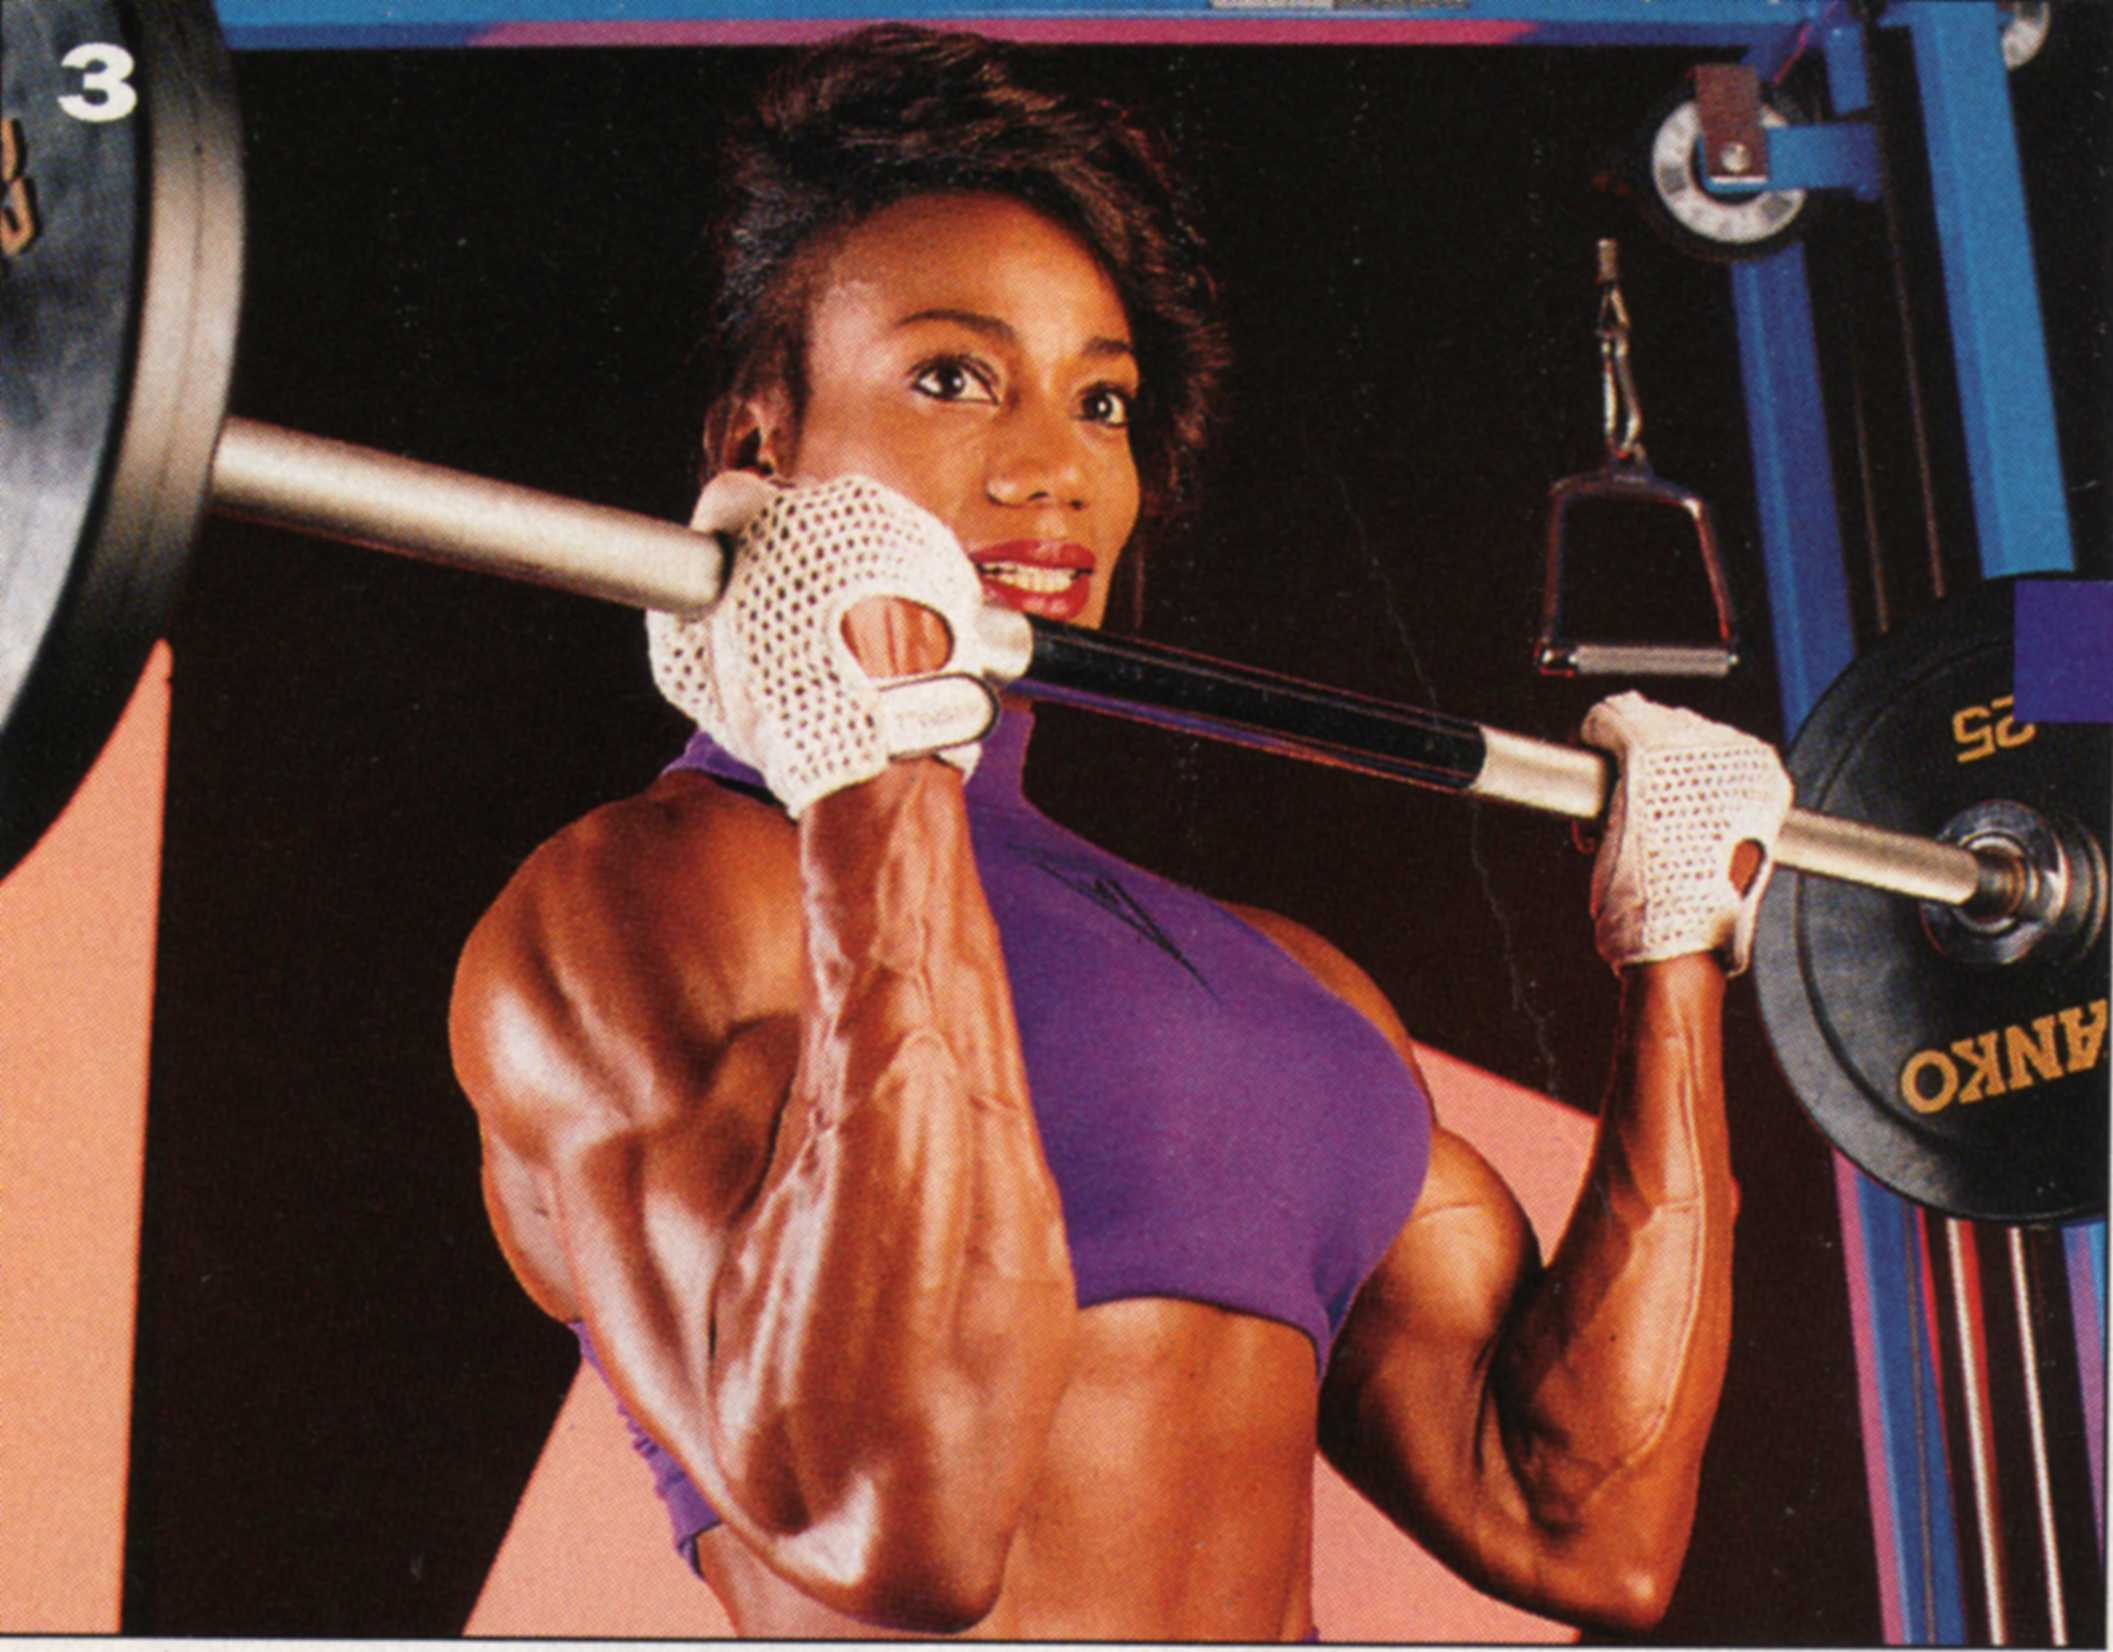 top ten reasons to love athletic and muscular women